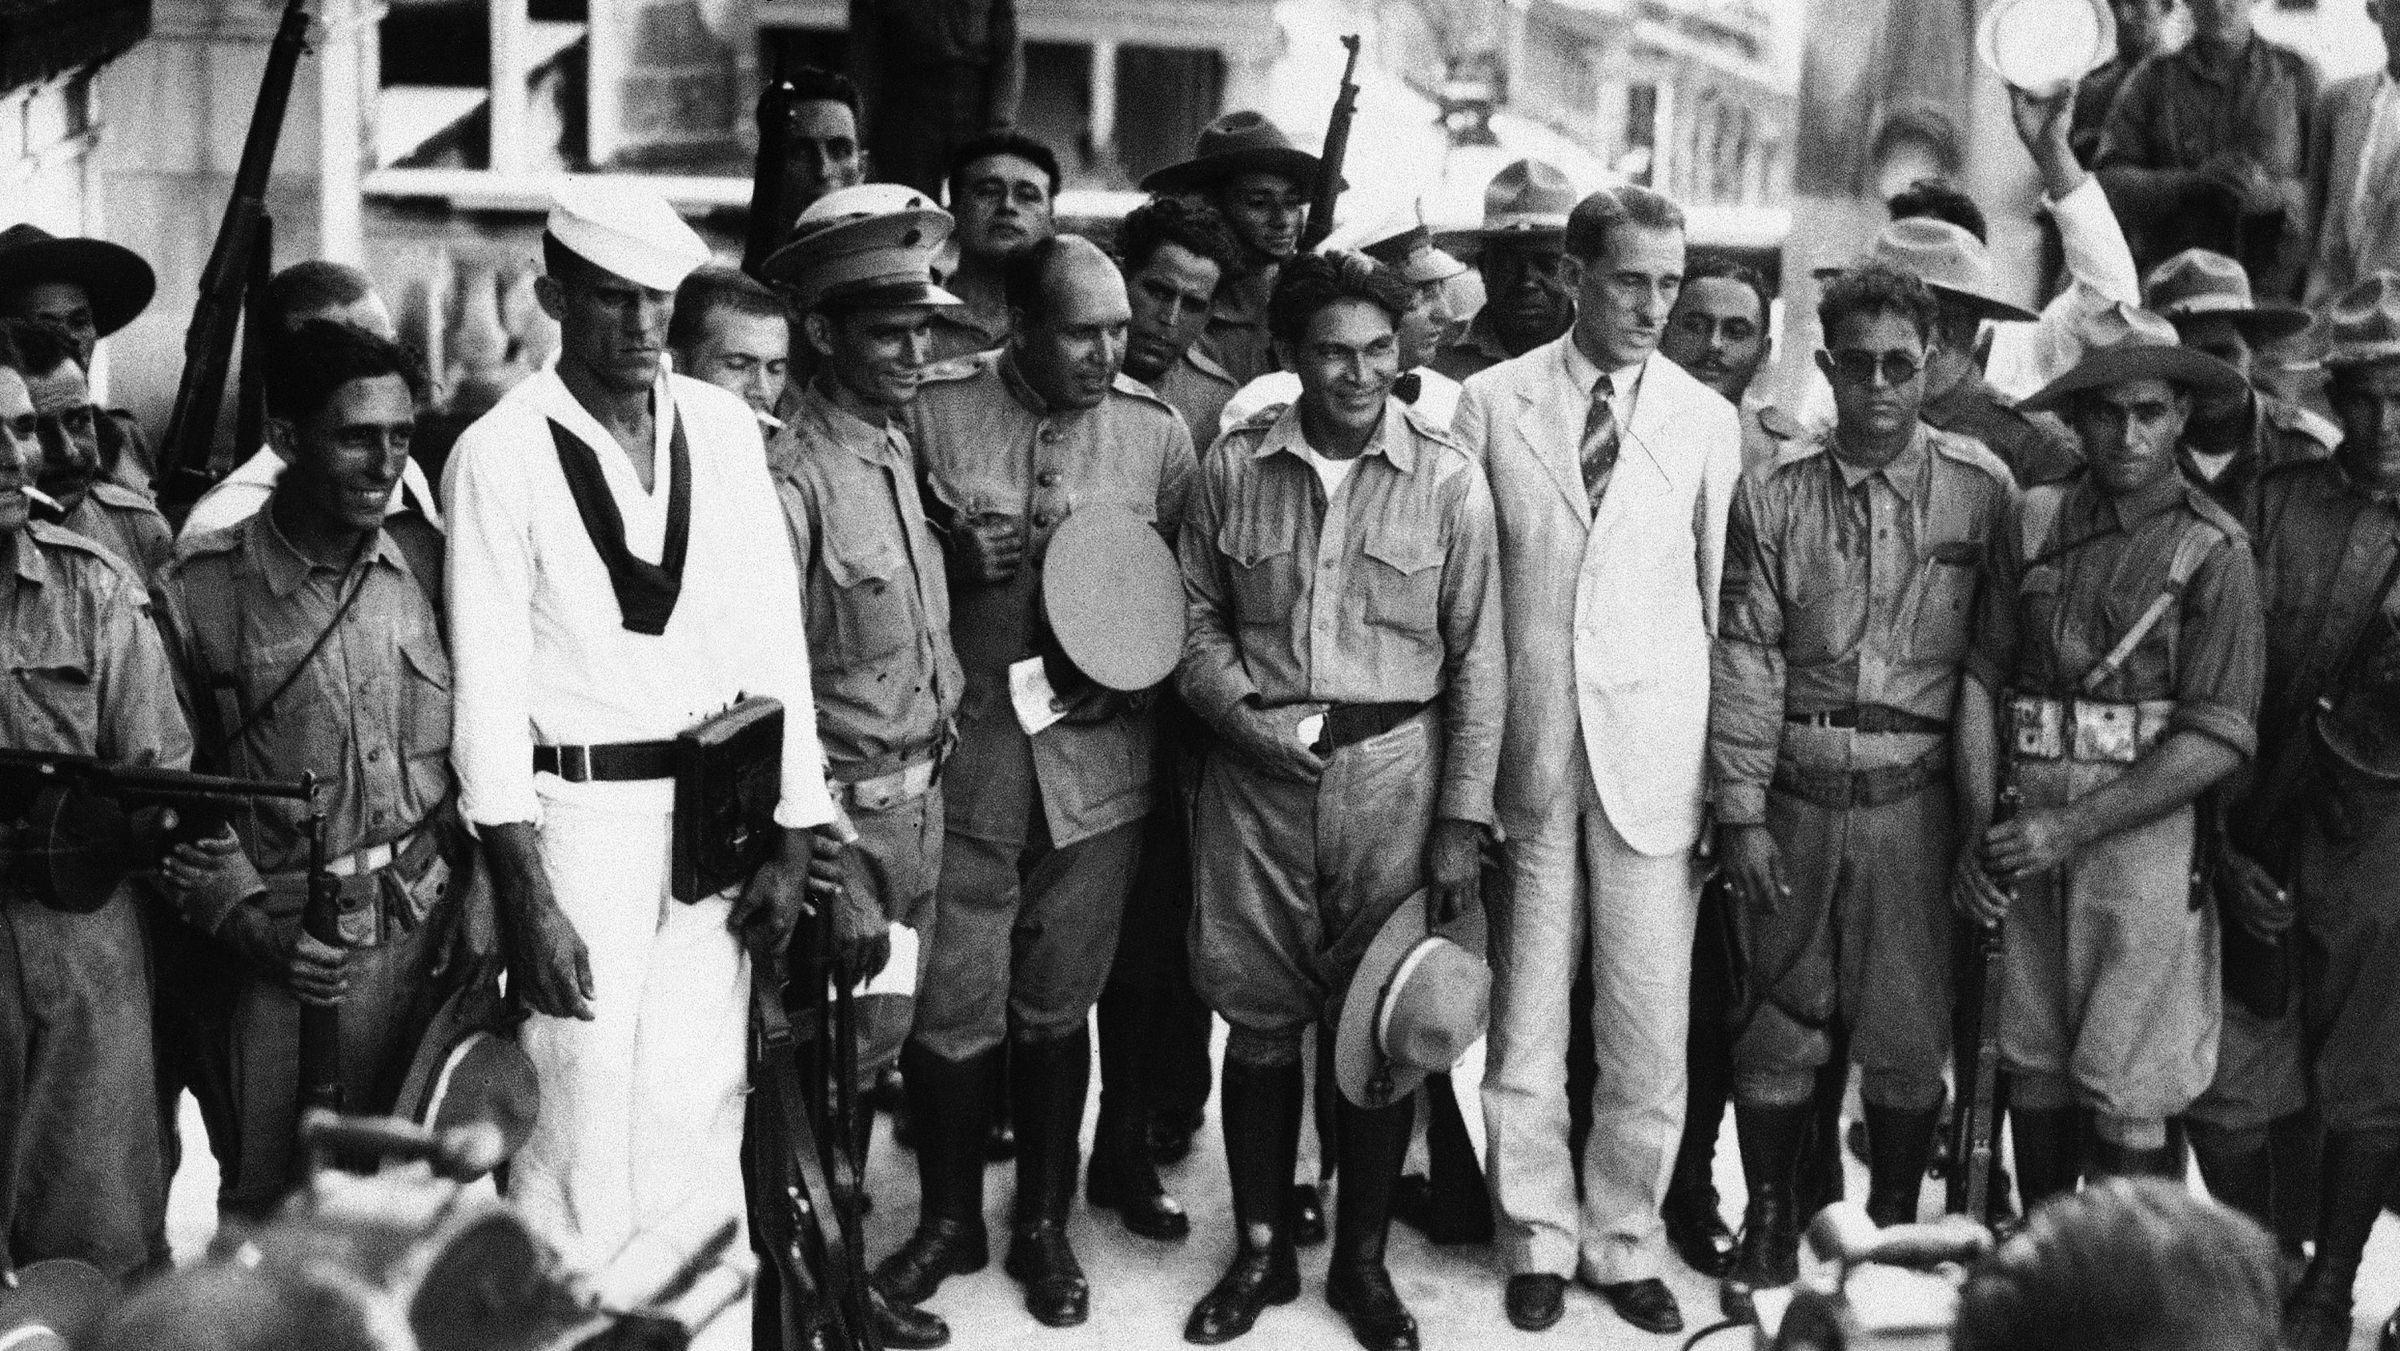 """Sergeant Fulgencio Batista, center, hand on belt, who overnight has become the center of activity in the latest Cuban trouble, is shown Sept. 7, 1933. From his place as top sergeant in the Cuban Army he took the title of """"Revolutionary Chief of Armed Forces"""" in the uprising which caused the downfall of the de Cespedes government."""